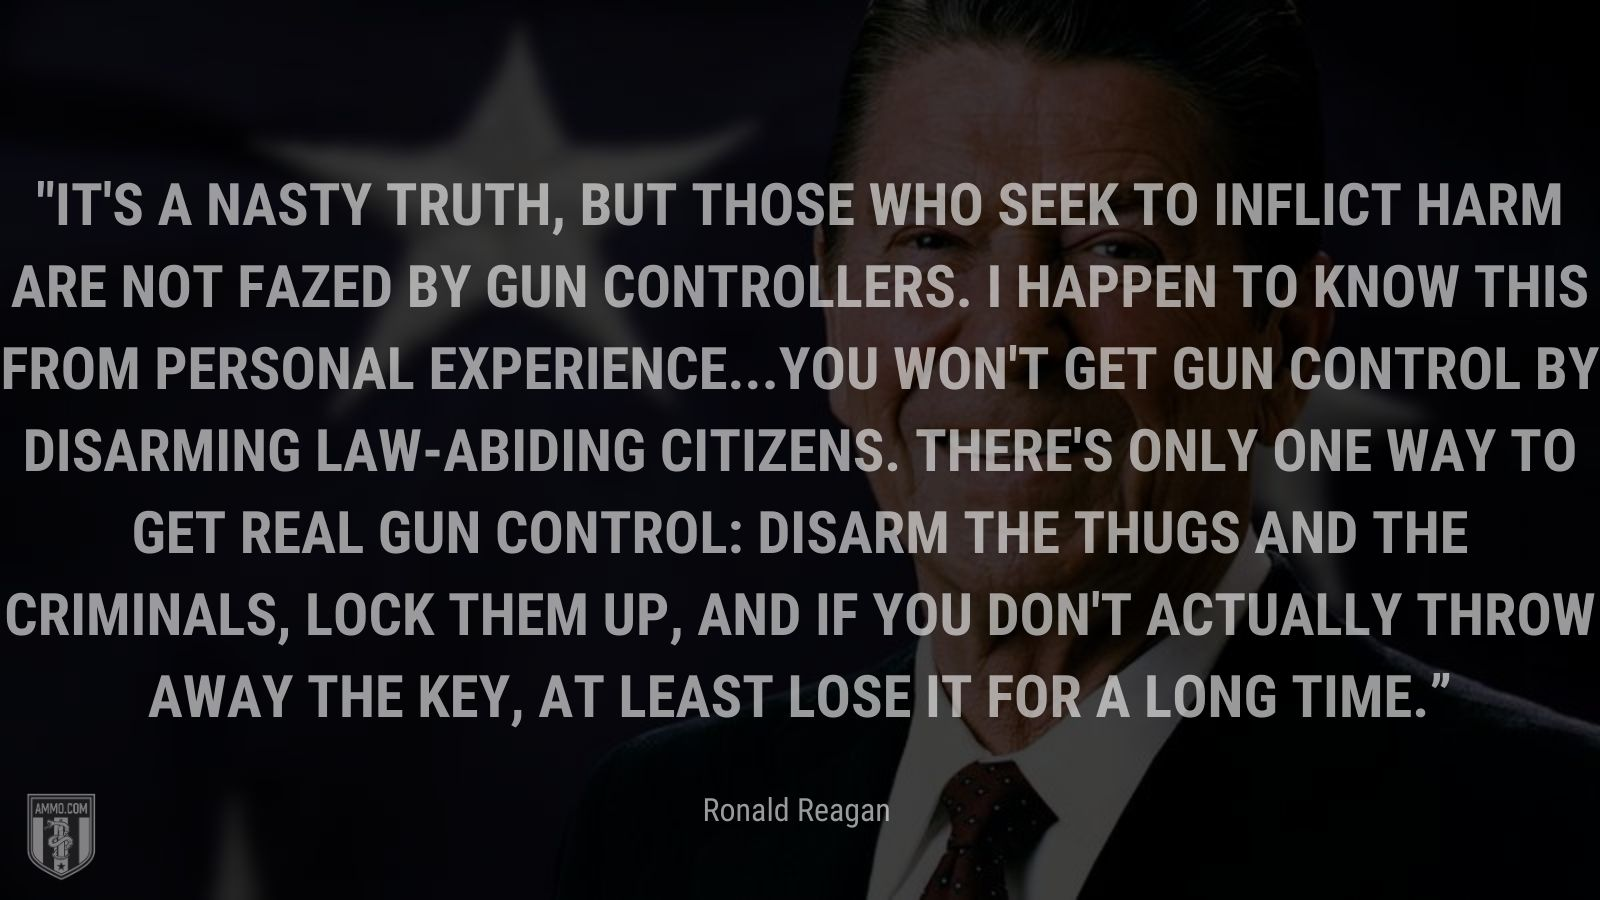 """""""It's a nasty truth, but those who seek to inflict harm are not fazed by gun controllers. I happen to know this from personal experience...You won't get gun control by disarming law-abiding citizens. There's only one way to get real gun control: Disarm the thugs and the criminals, lock them up, and if you don't actually throw away the key, at least lose it for a long time."""" - Ronald Reagan"""